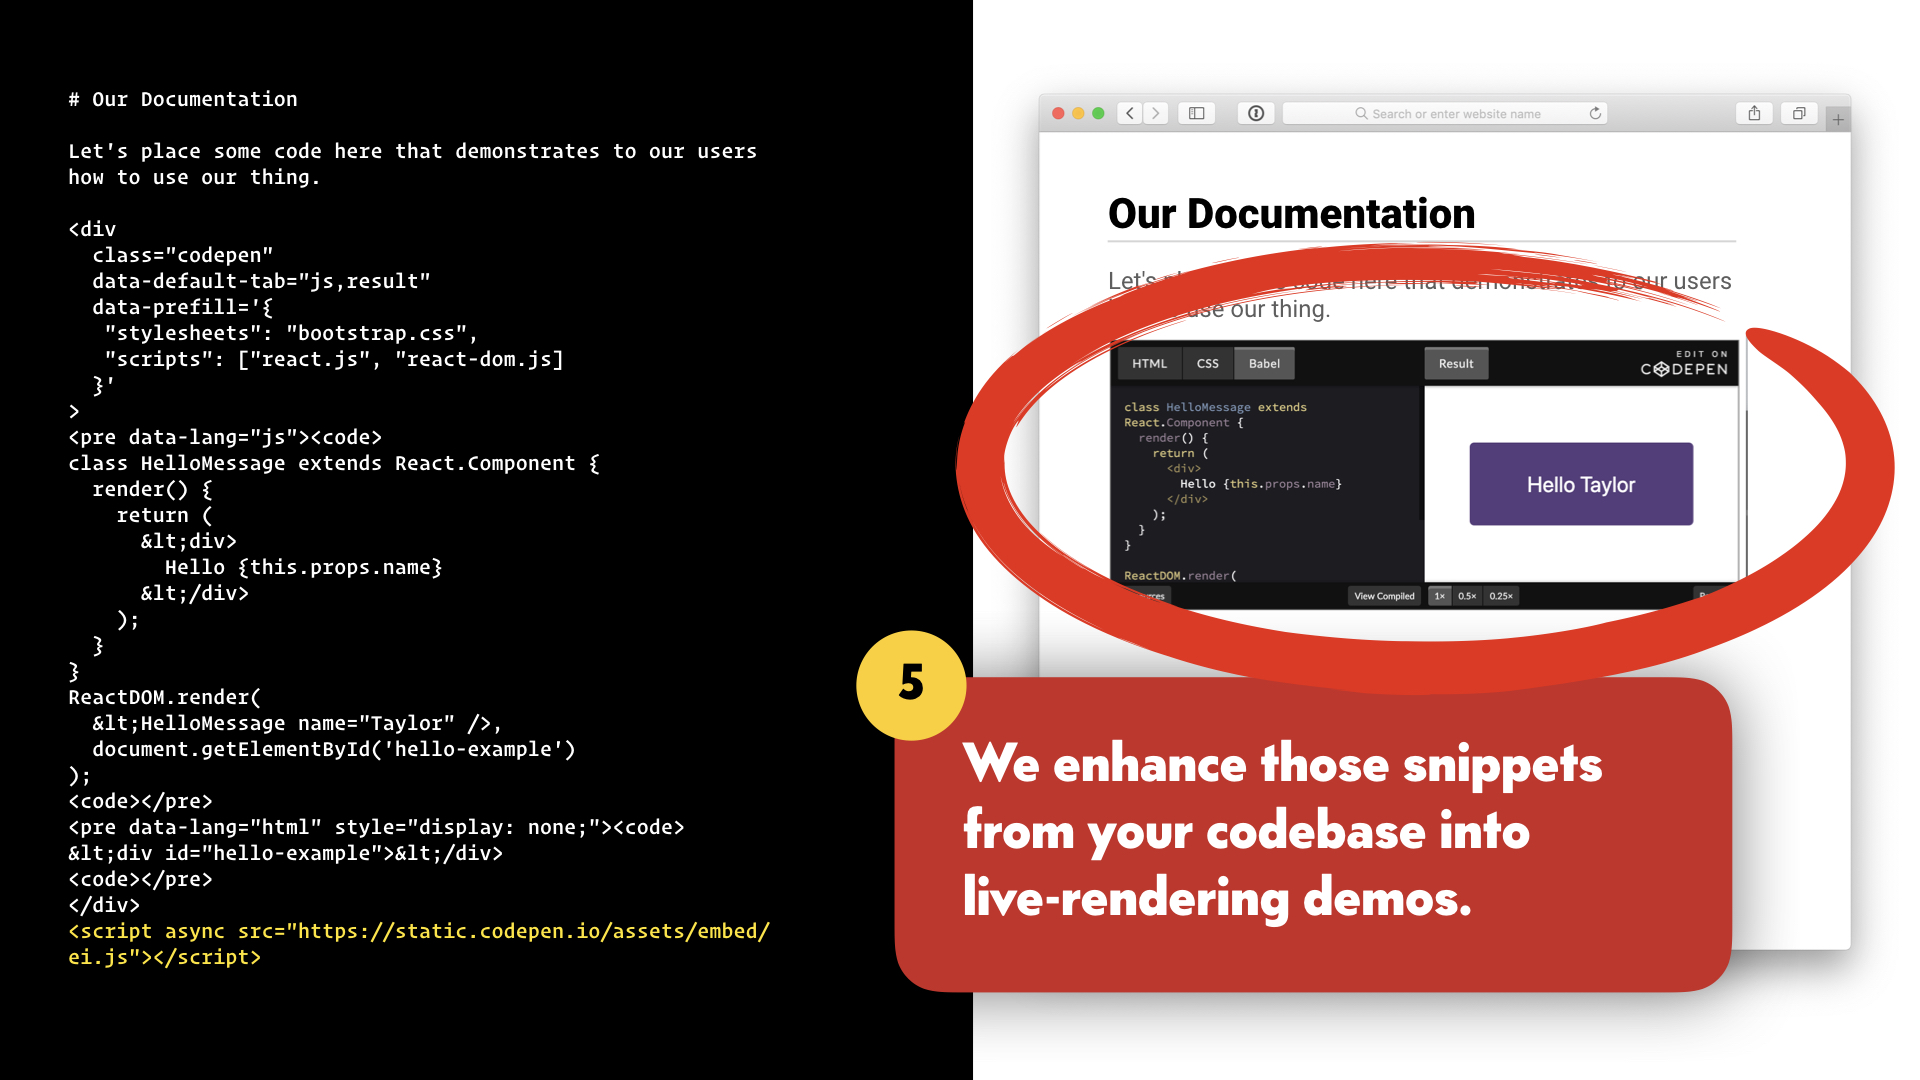 The browser is updated with the CodePen embed.